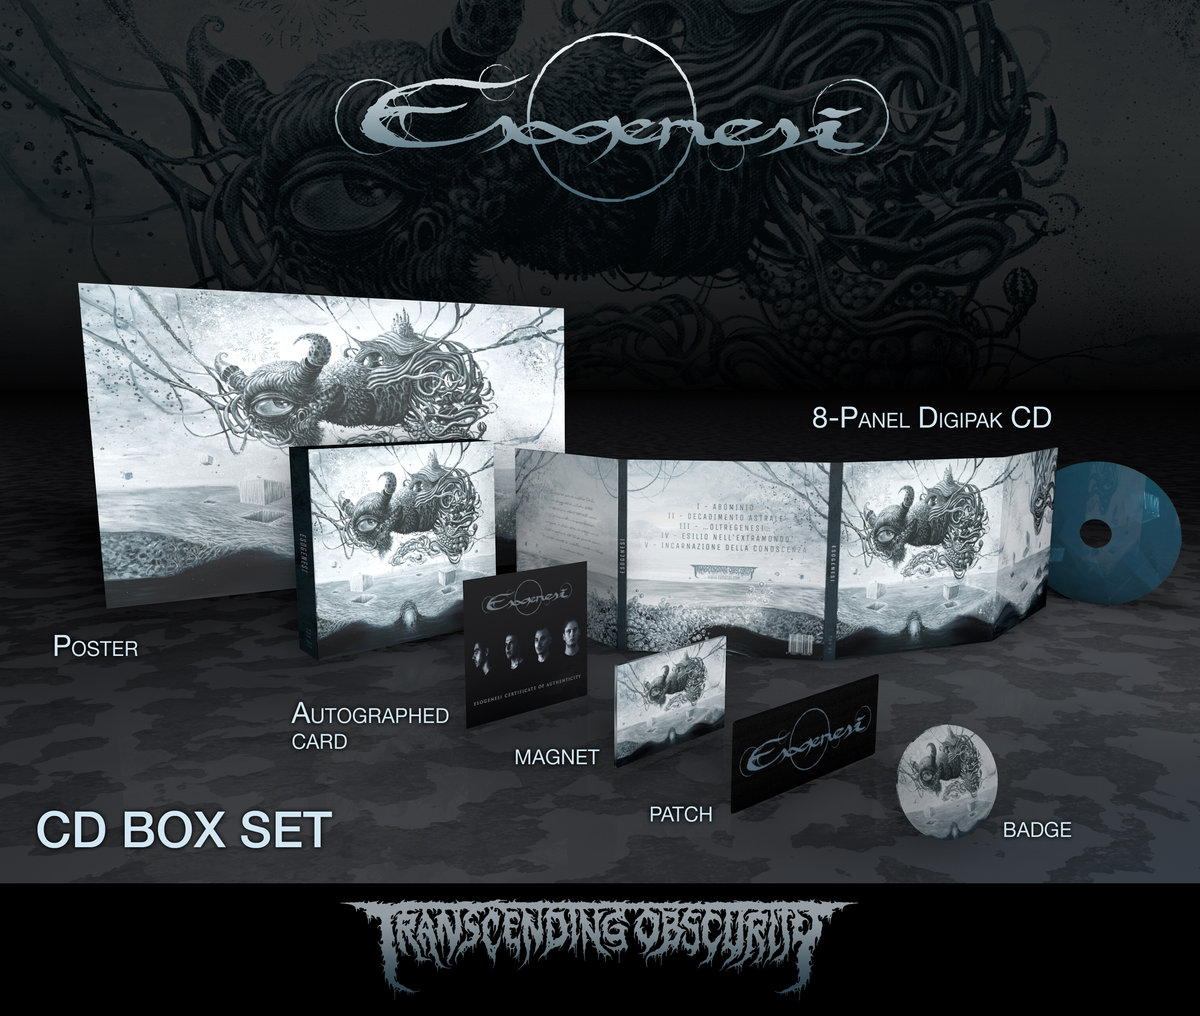 ESOGENESI (Italy) – Self​-​titled (Death​/​Doom Metal) Autographed Limited Edition CD Box Set